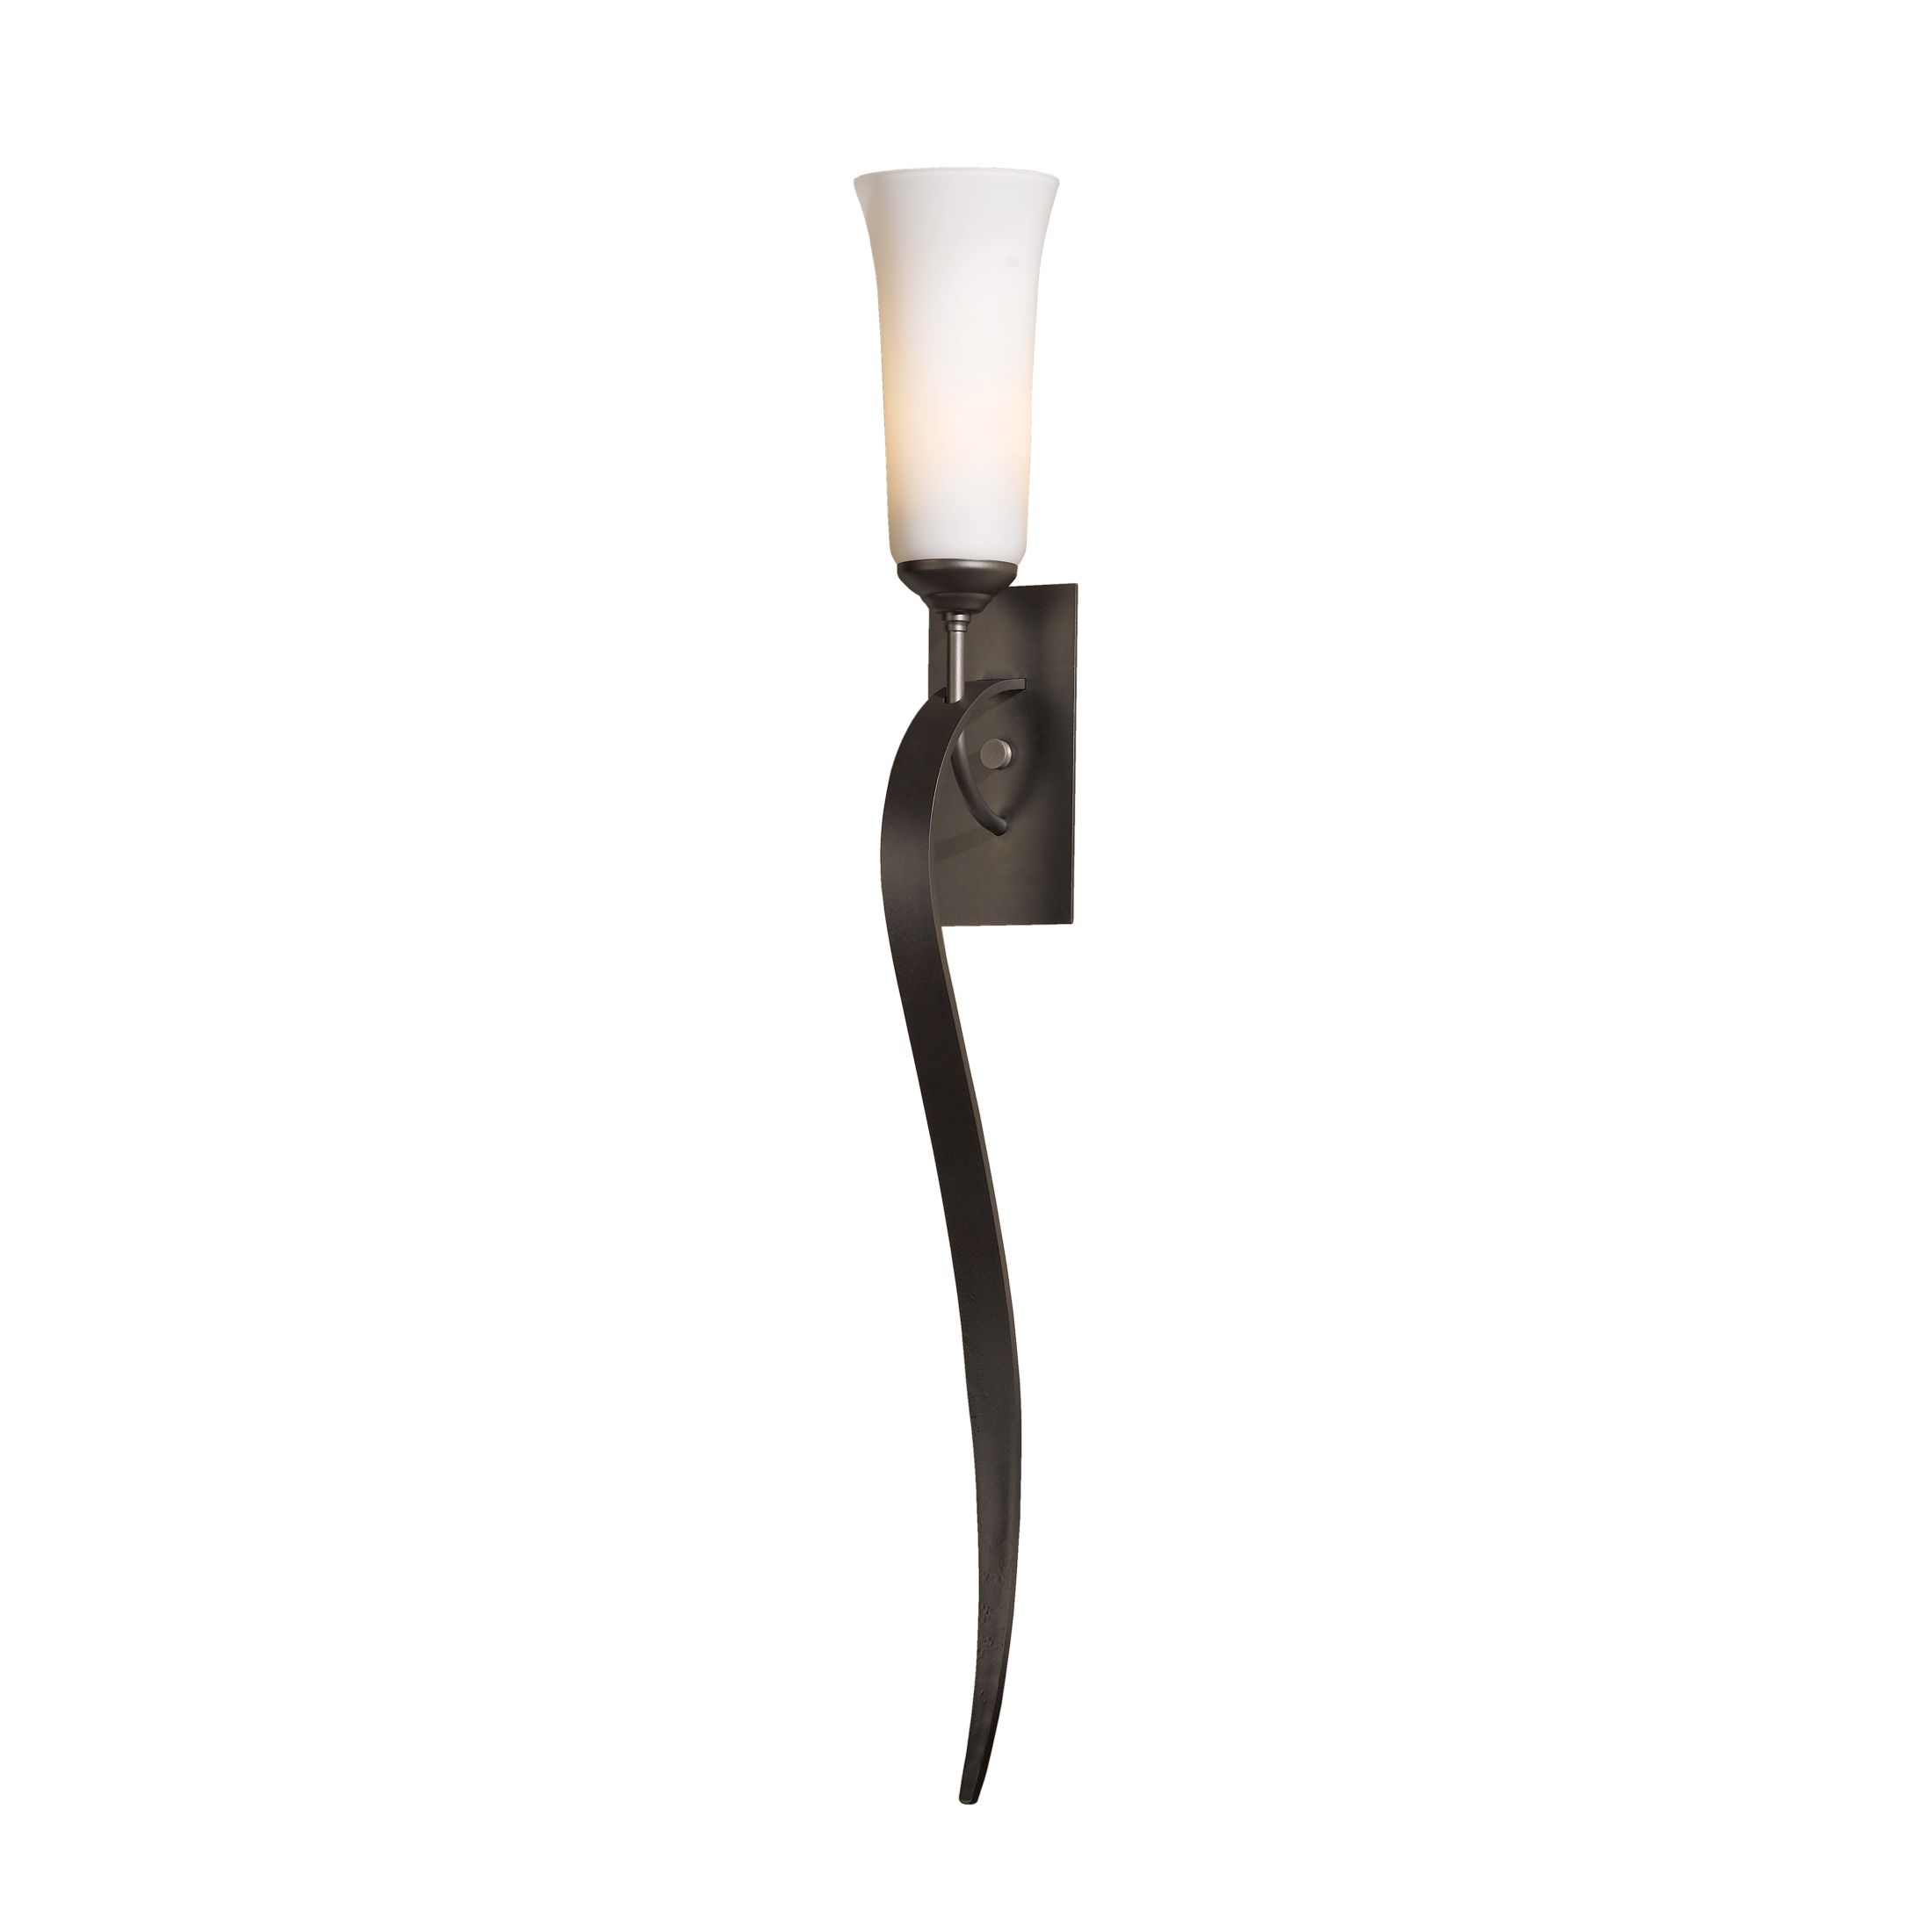 Hubbardton Forge Flora Sconce: Sweeping Taper 3 Arm Chandelier